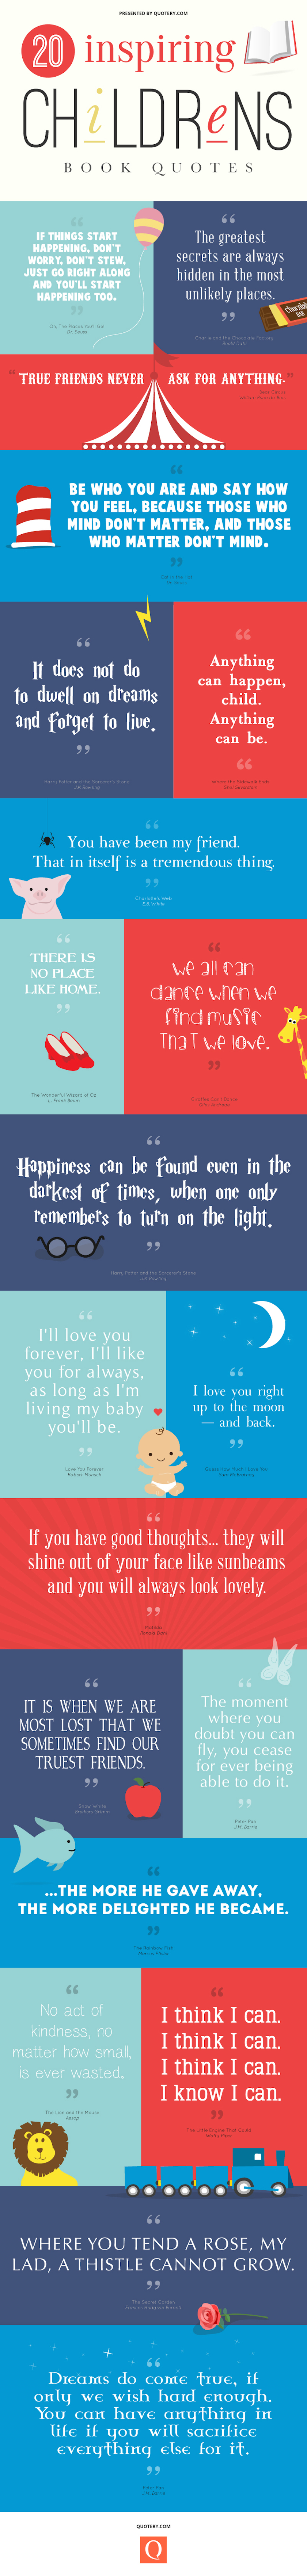 20 inspiring childrens book quotes infographic